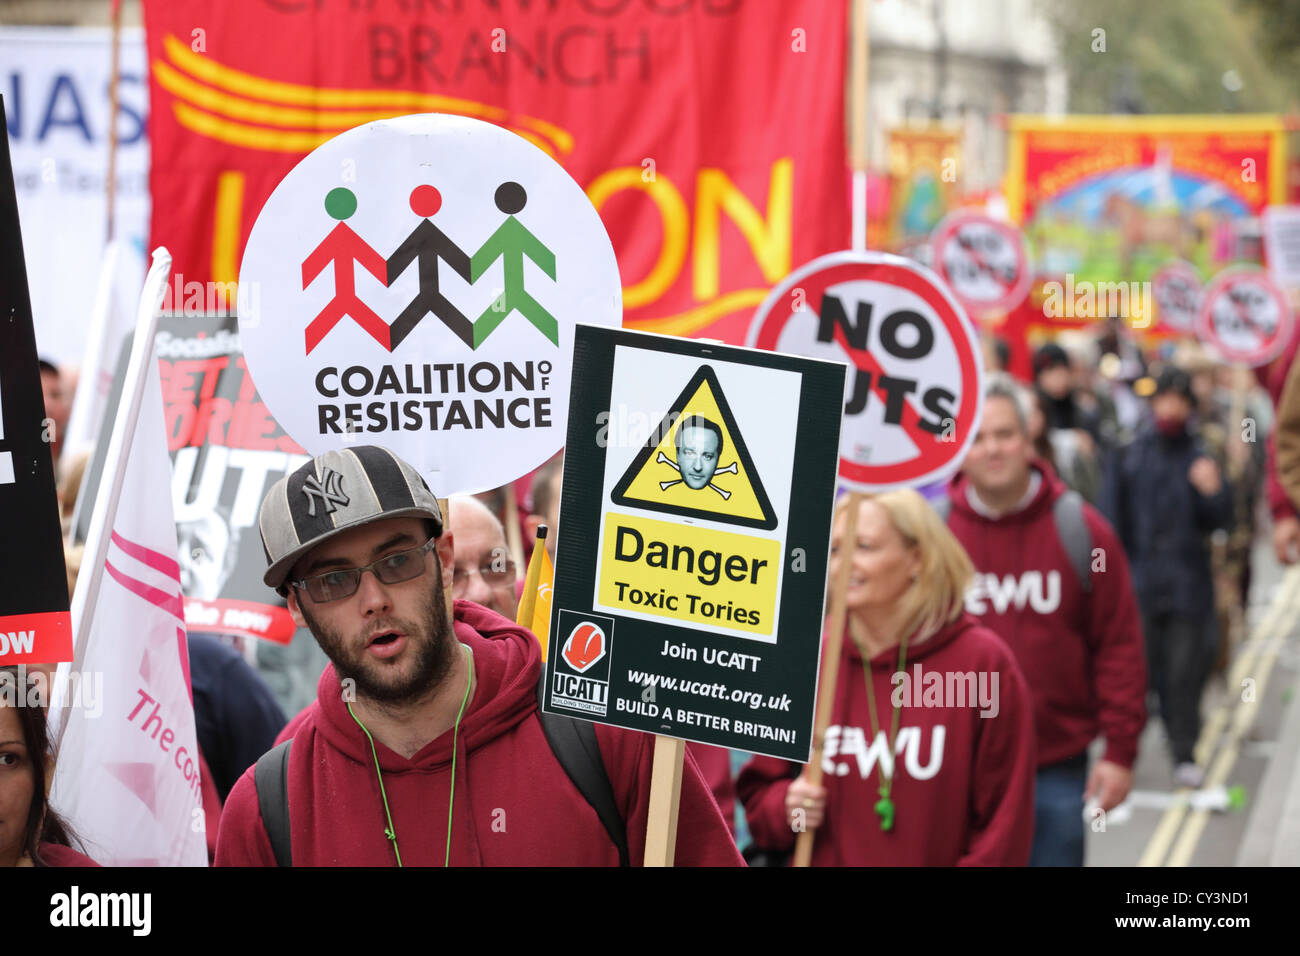 A Future That Works - TUC CWU march, central London. Anti-Cuts anti austerity mass protest movement against government - Stock Image